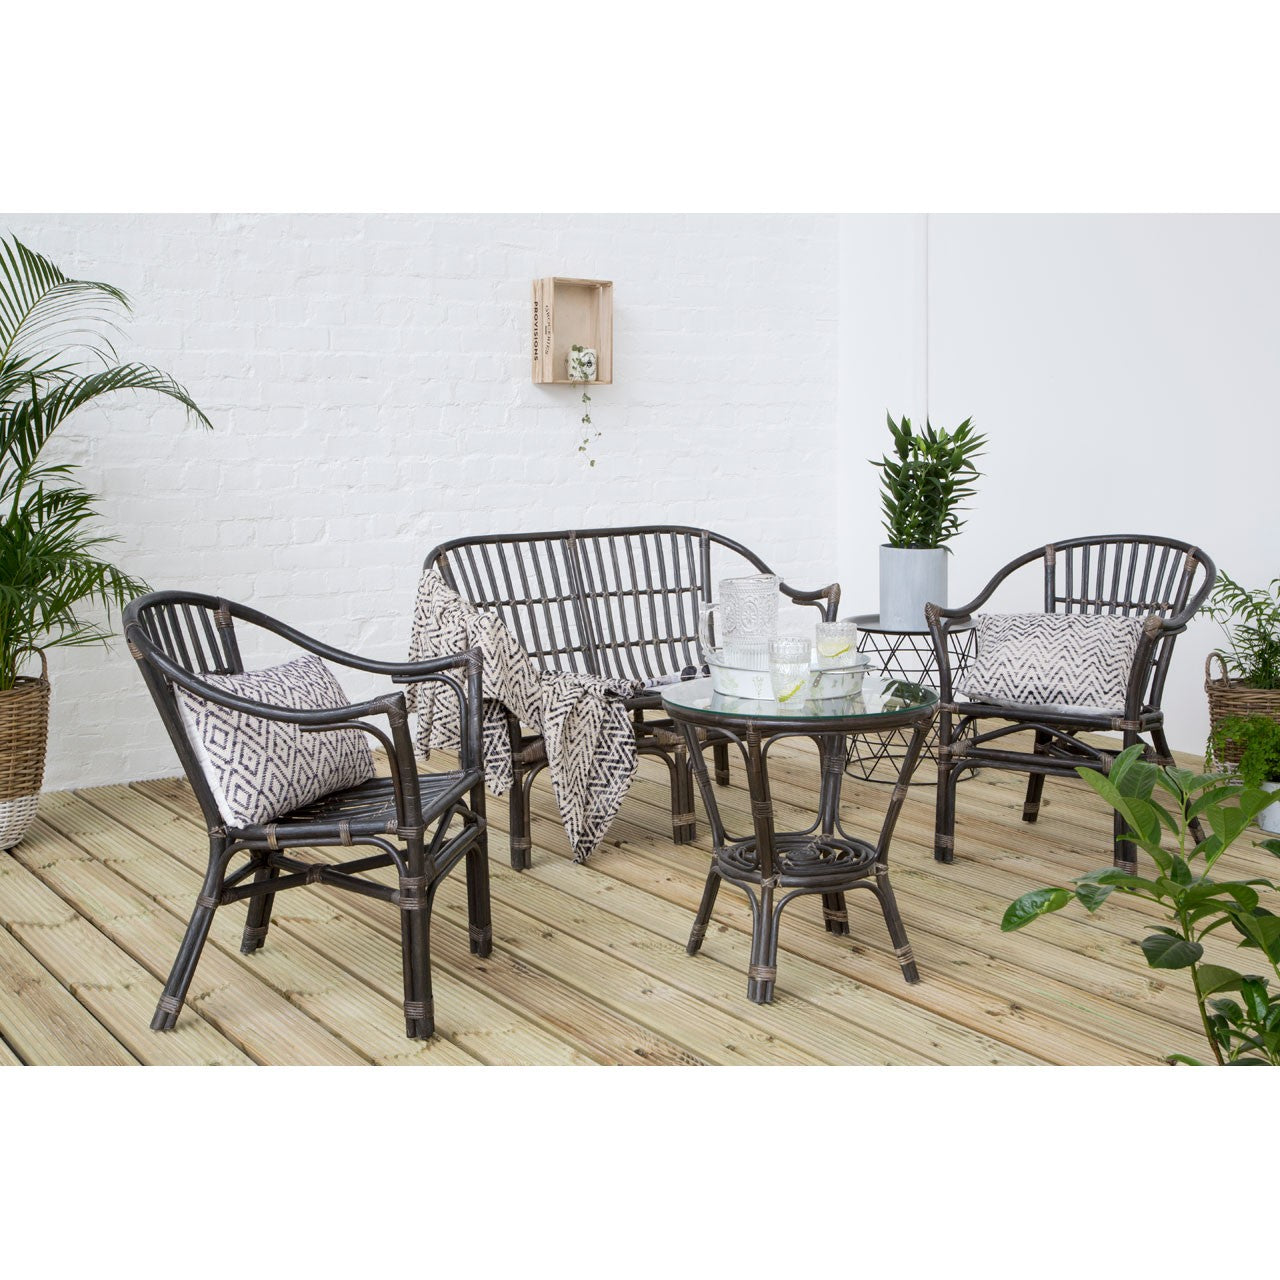 Milano Black Rattan Furniture Set